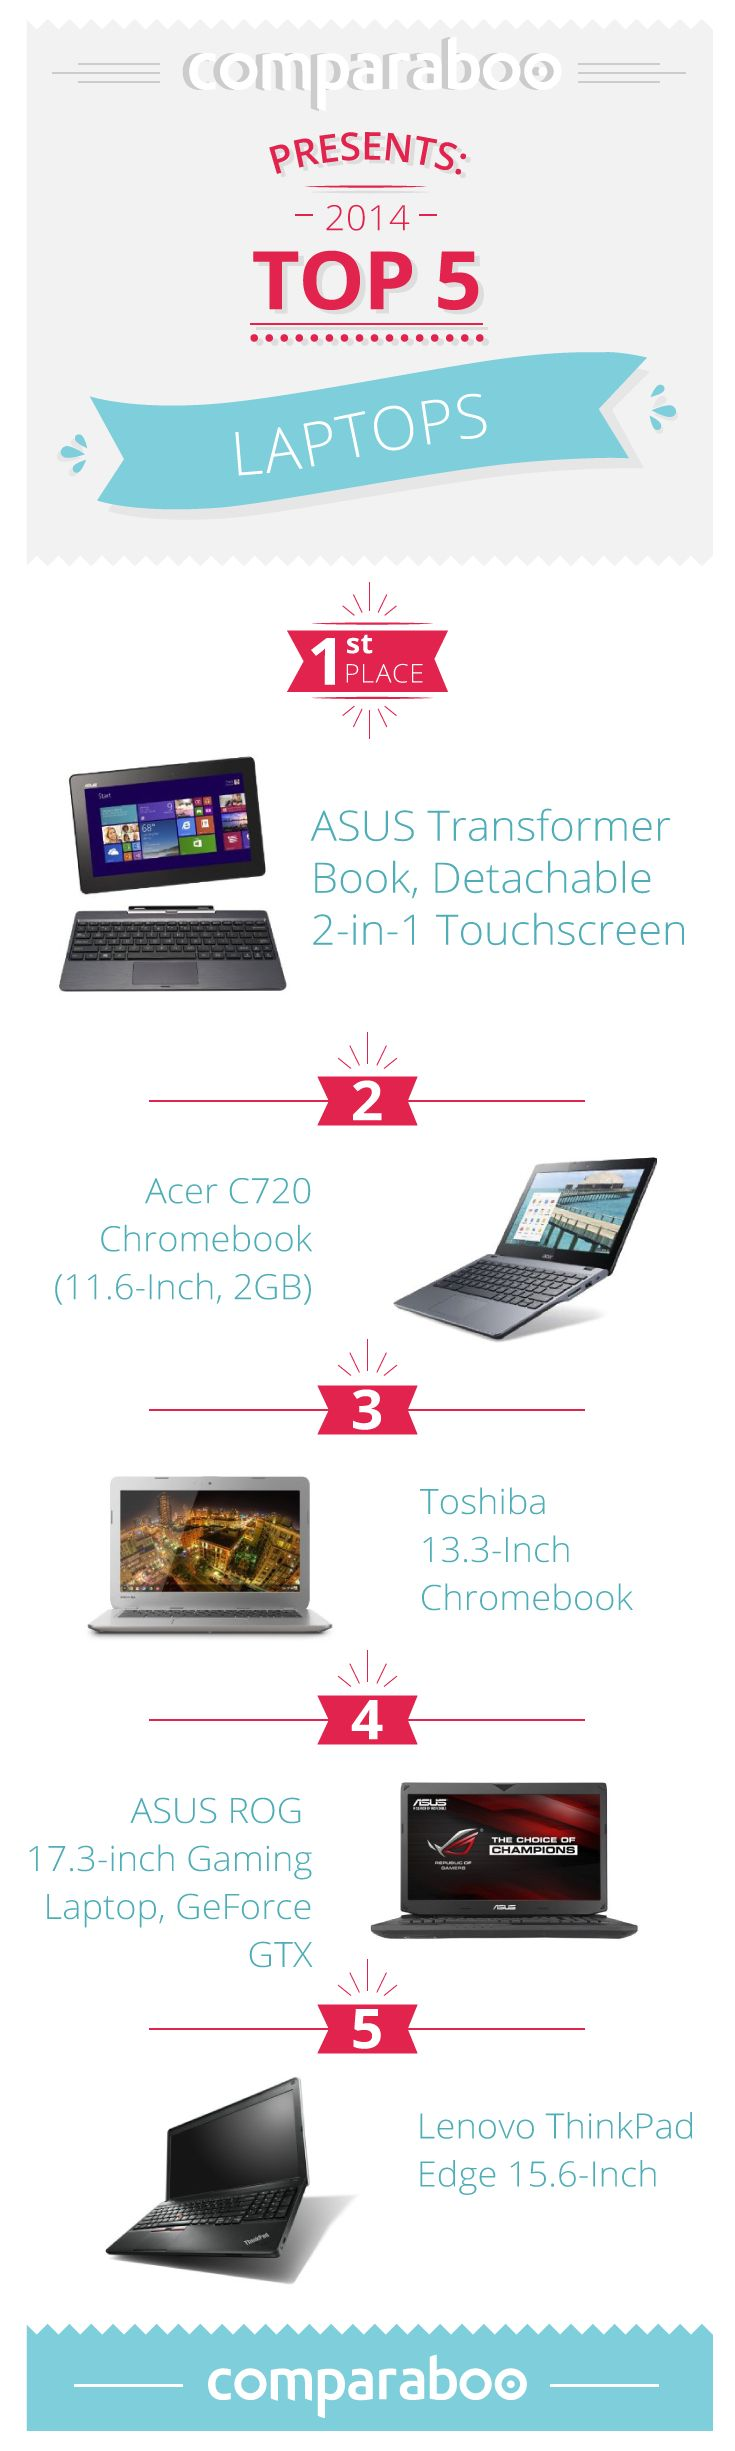 Top 5 laptops on Comparaboo based on value, popularity and quality. With diverse size and component combinations available, it may be tough to know which laptop is right for you. To make the shopping process simpler, we've drawn up this guide and have compiled a list of the top 10 laptops to get you on your way.